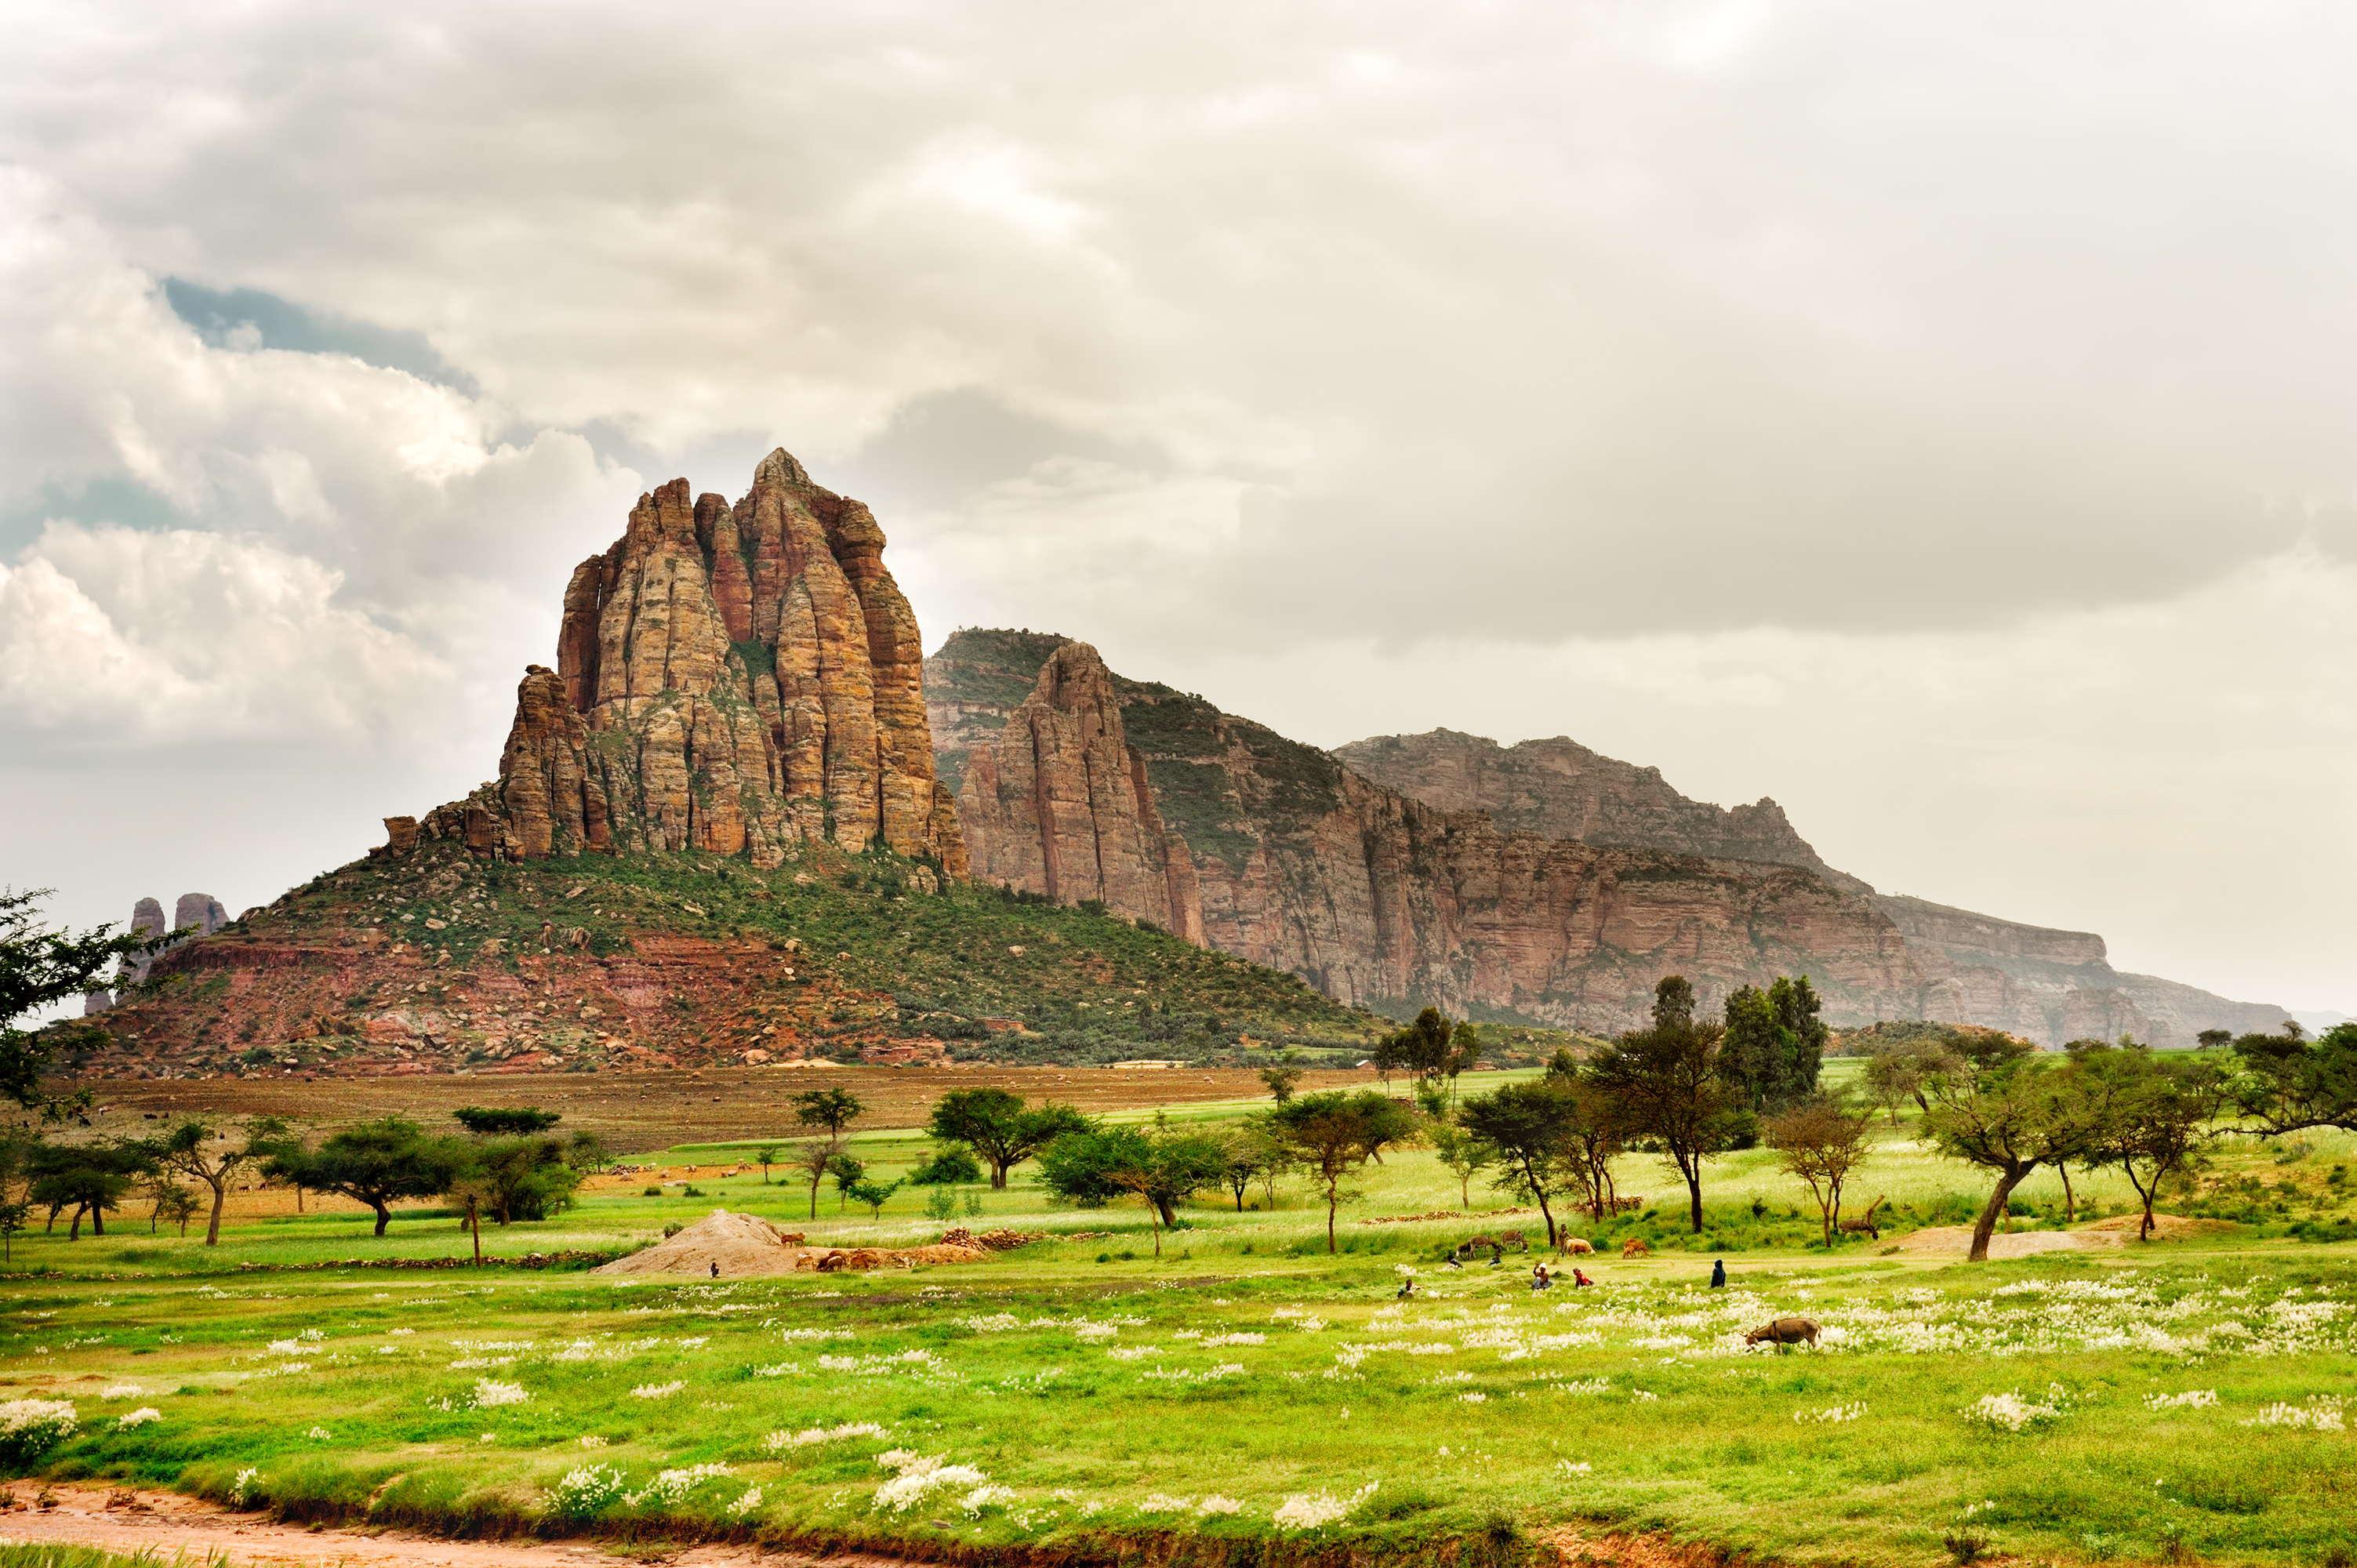 Ethiopia attempts to break record by planting 200 million trees in a